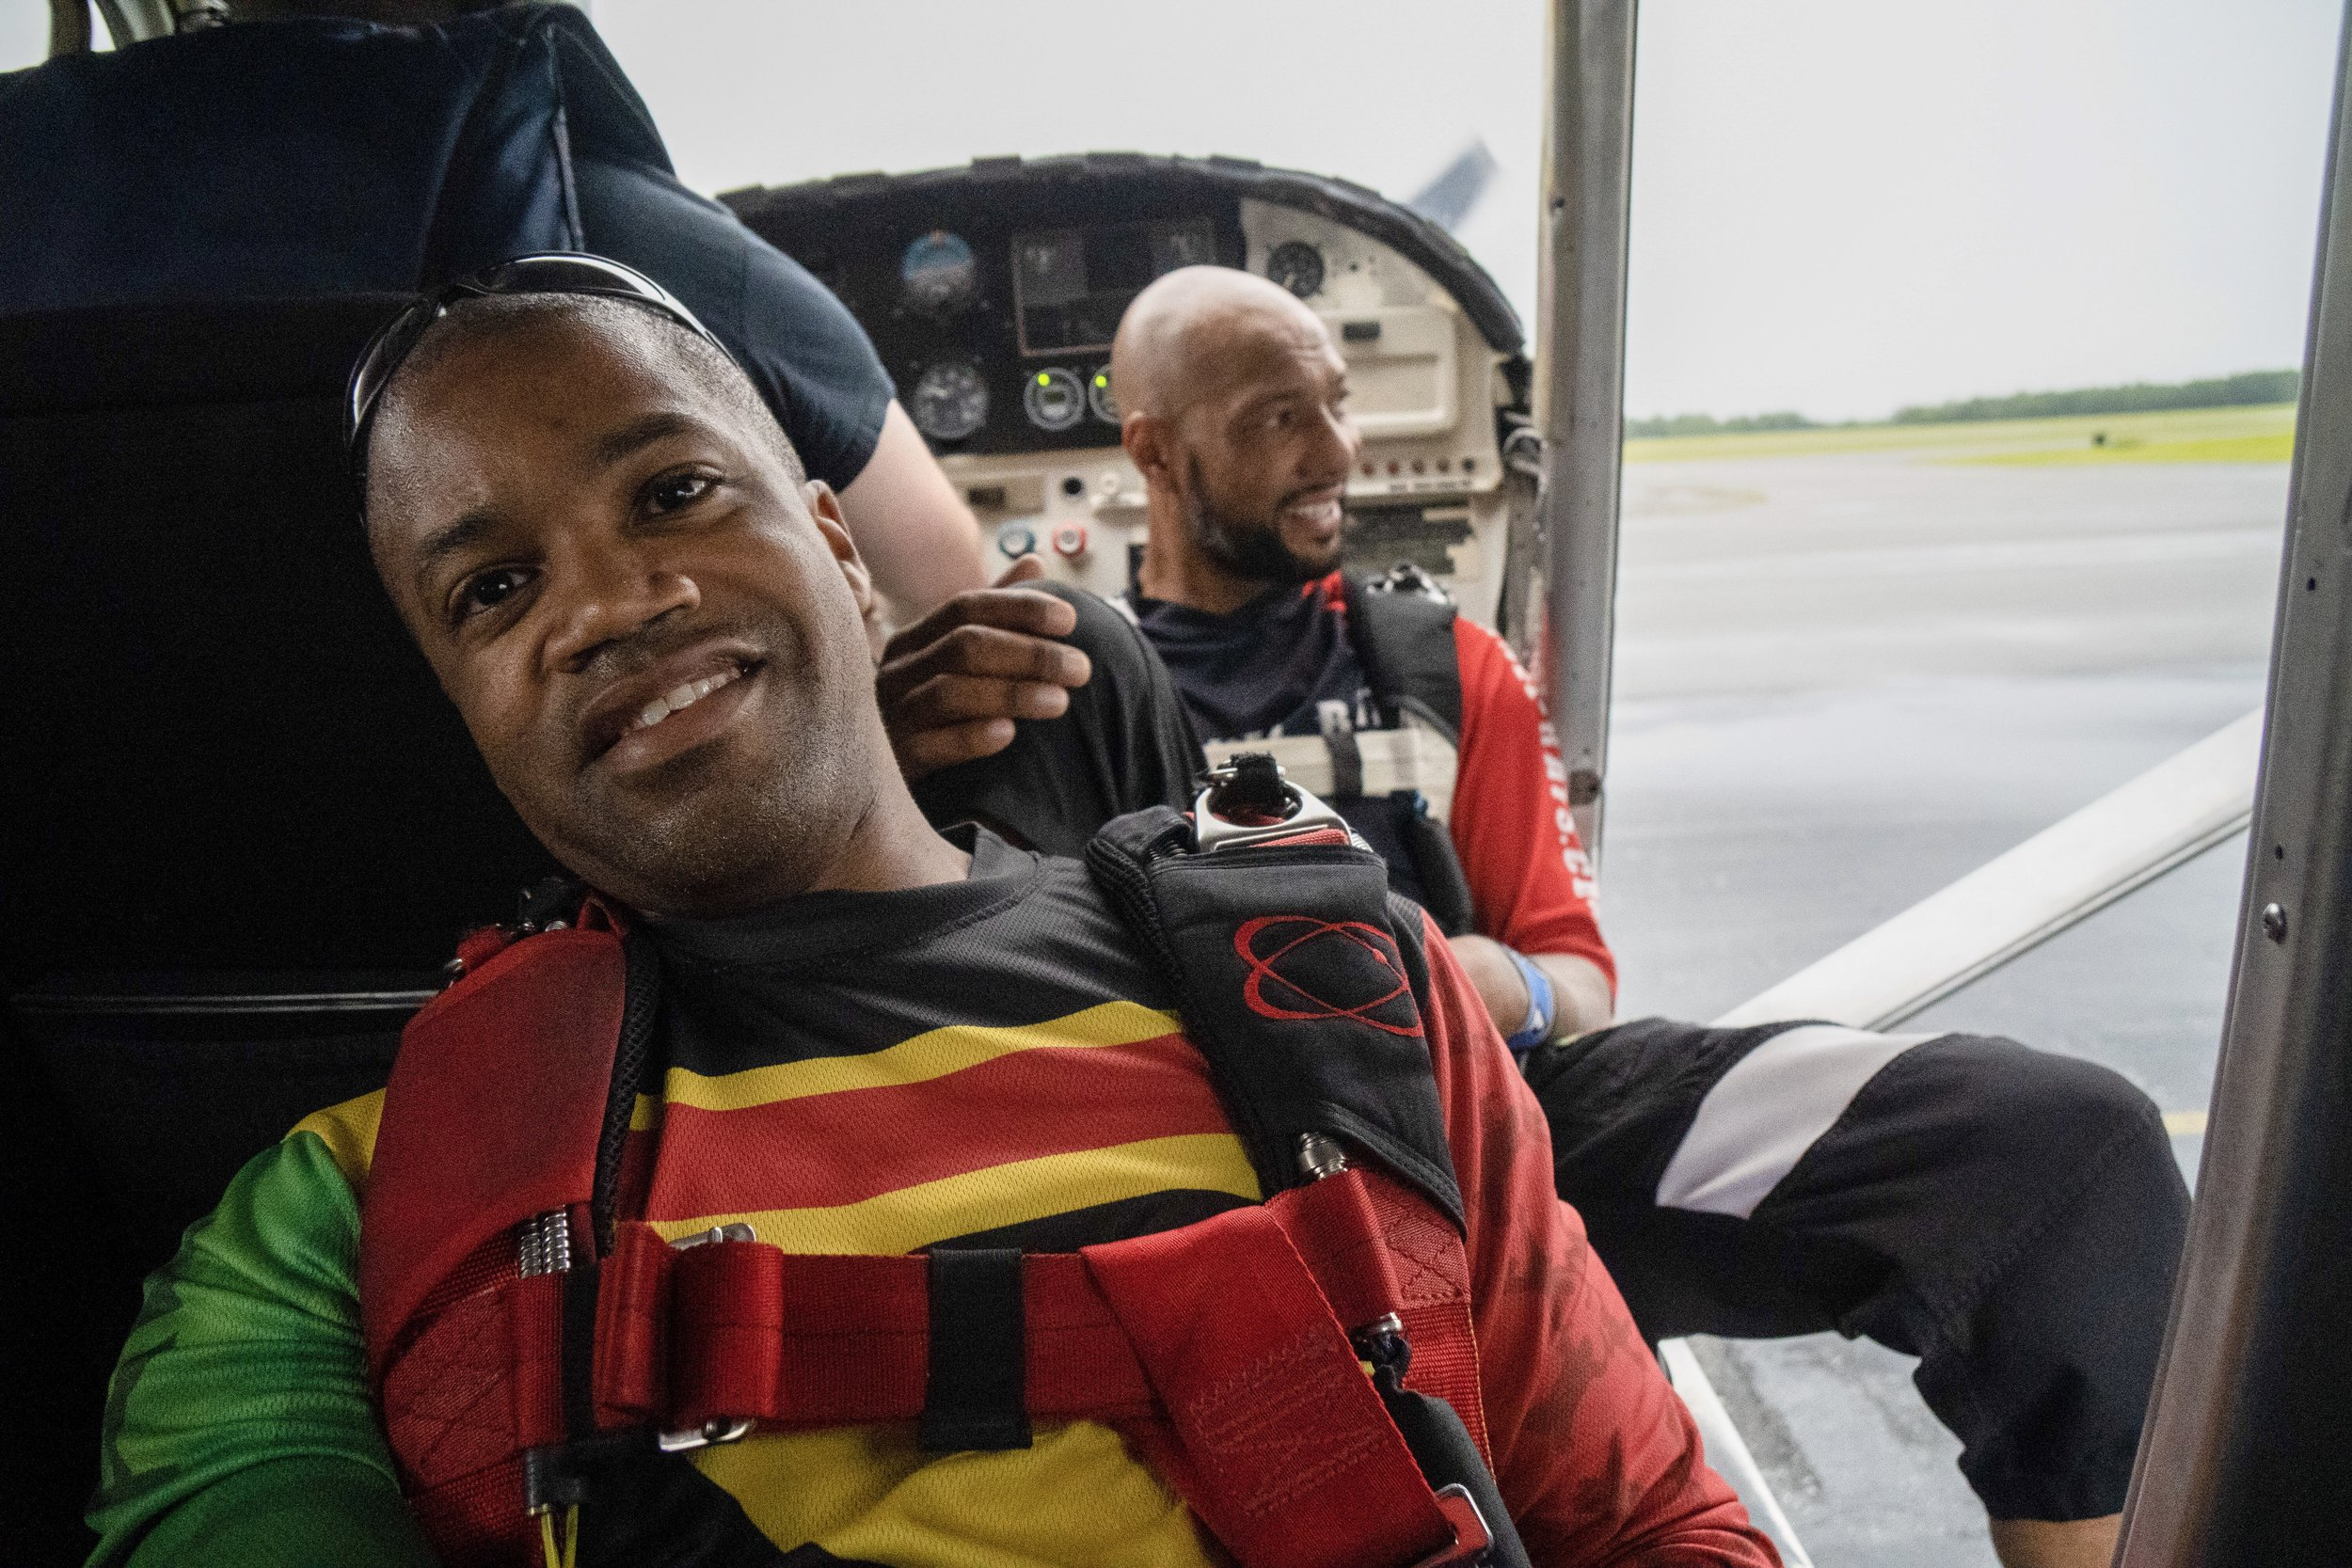 Nicholas Walker  started parachuting in 2002 while serving with 7th Special Forces Group and JSOC. He became a licensed civilian skydiver in 2008.